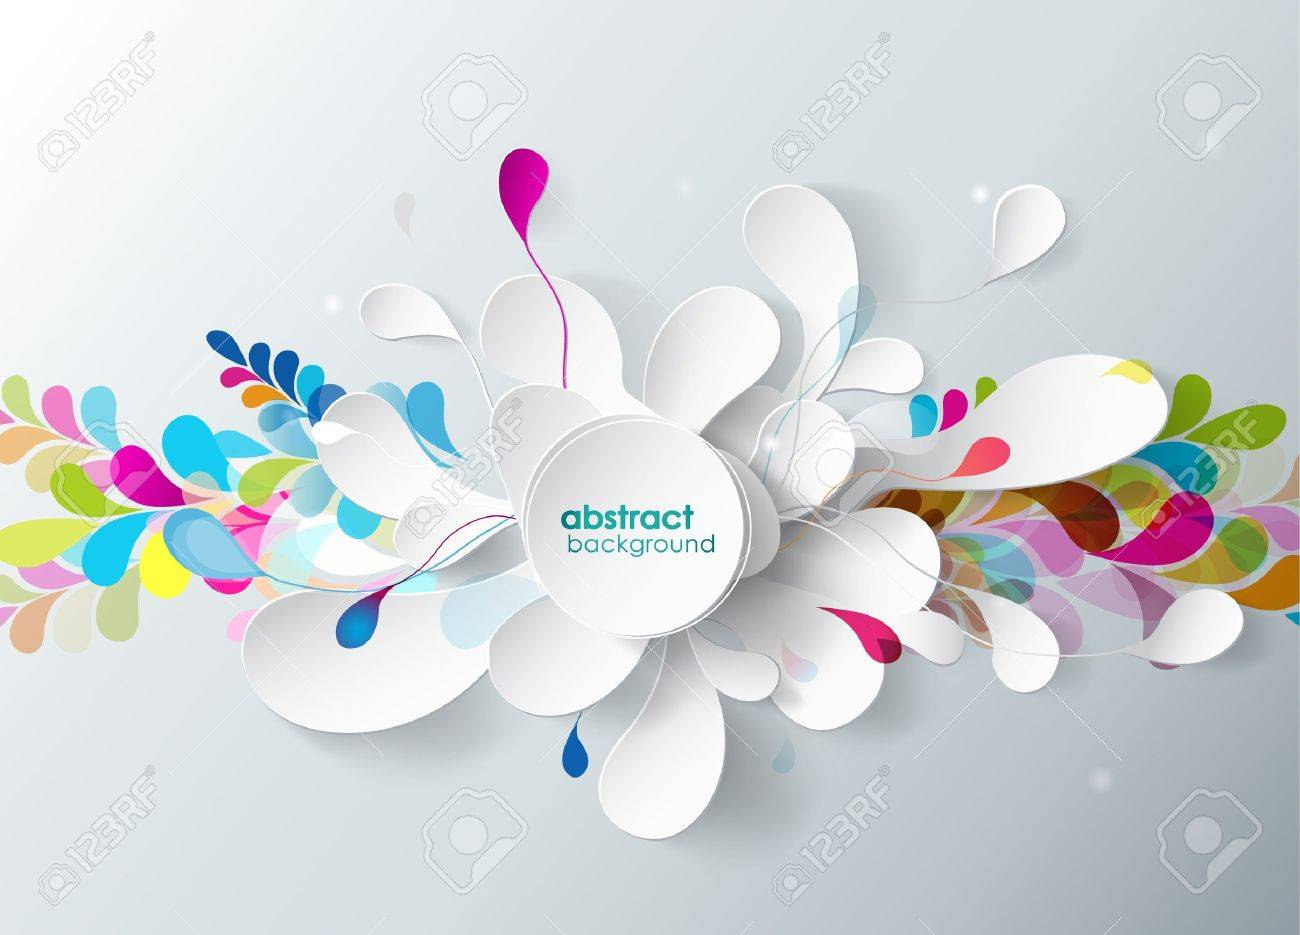 abstract background with paper flower. - 21942206